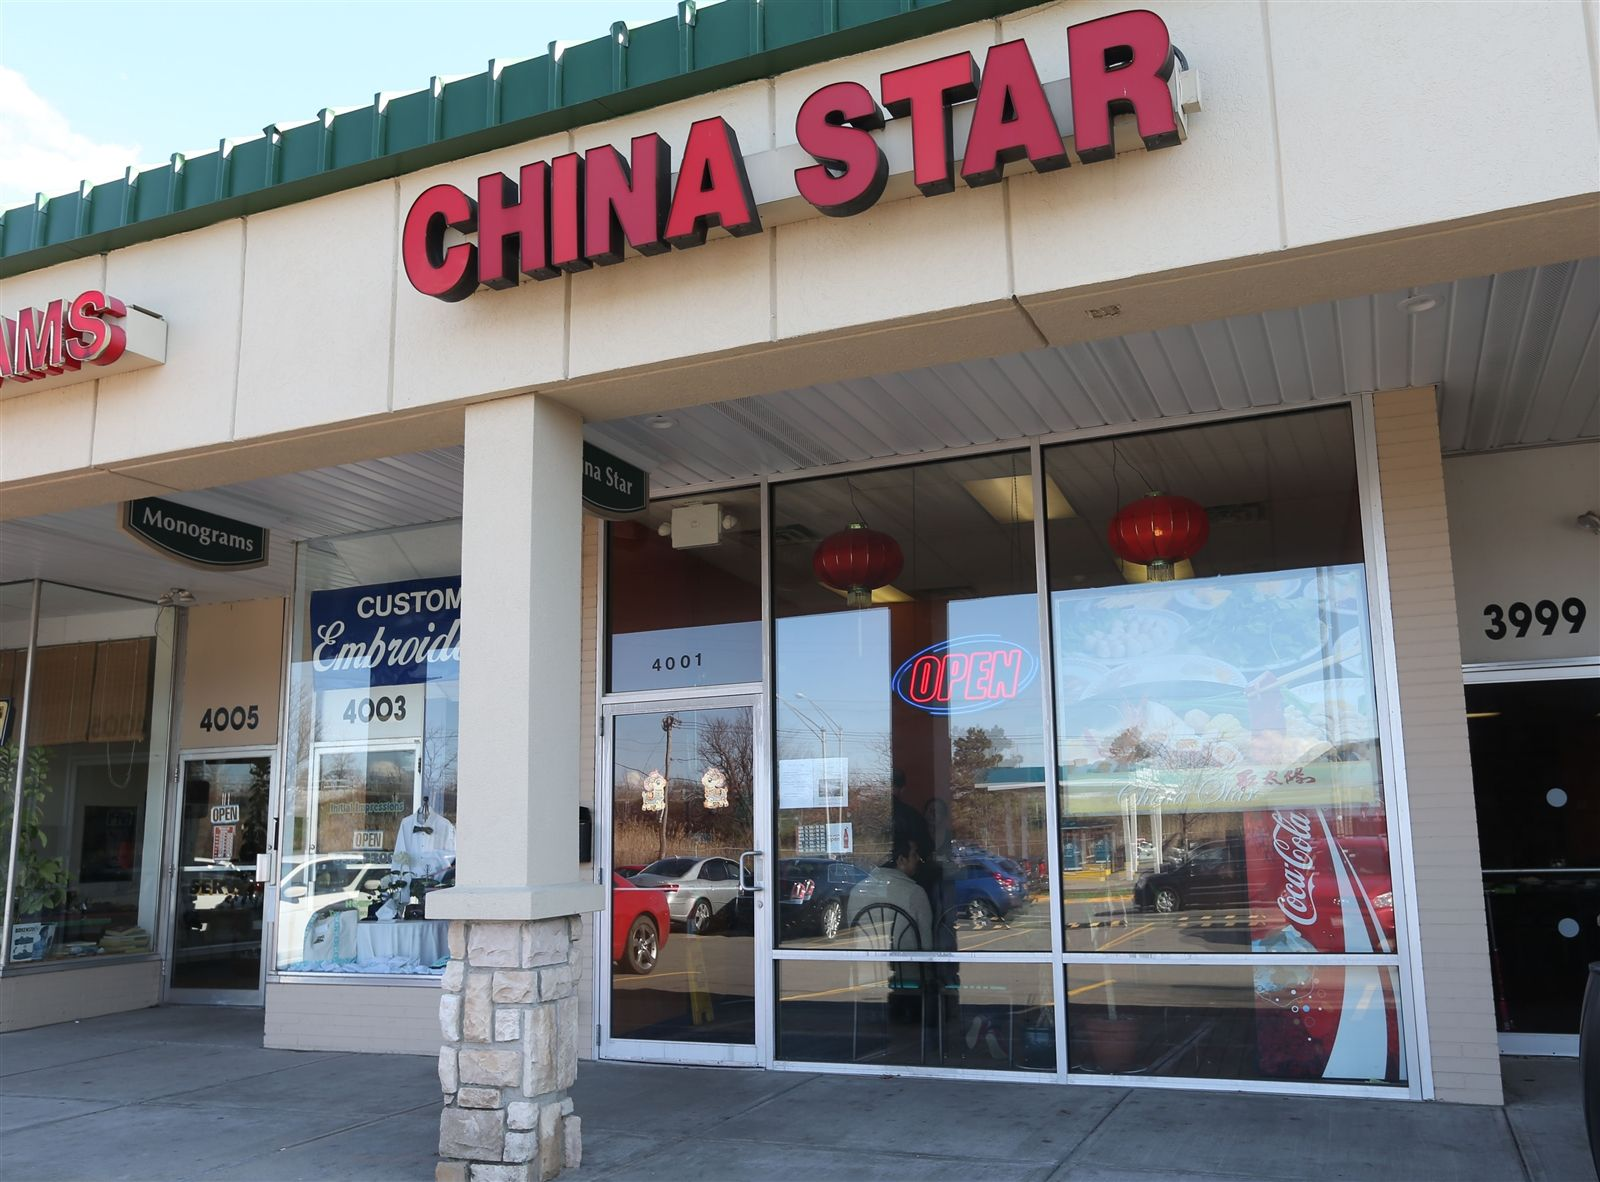 China Star restaurant is at 4001 Sheridan Drive in Amherst. Like the other restaurants listed here, it offers a Chinese-American menu with General Tso's chicken - and authentic Chinese cuisine. Sichuan specialist with Chinese hot pot, chicken with Chongqing style, smoked pork with sprouts of garlic (leeks), sour string beans with minced pork, dan dan noodle, cold cucumber with scallion sauce, sliced belly pork with garlic.